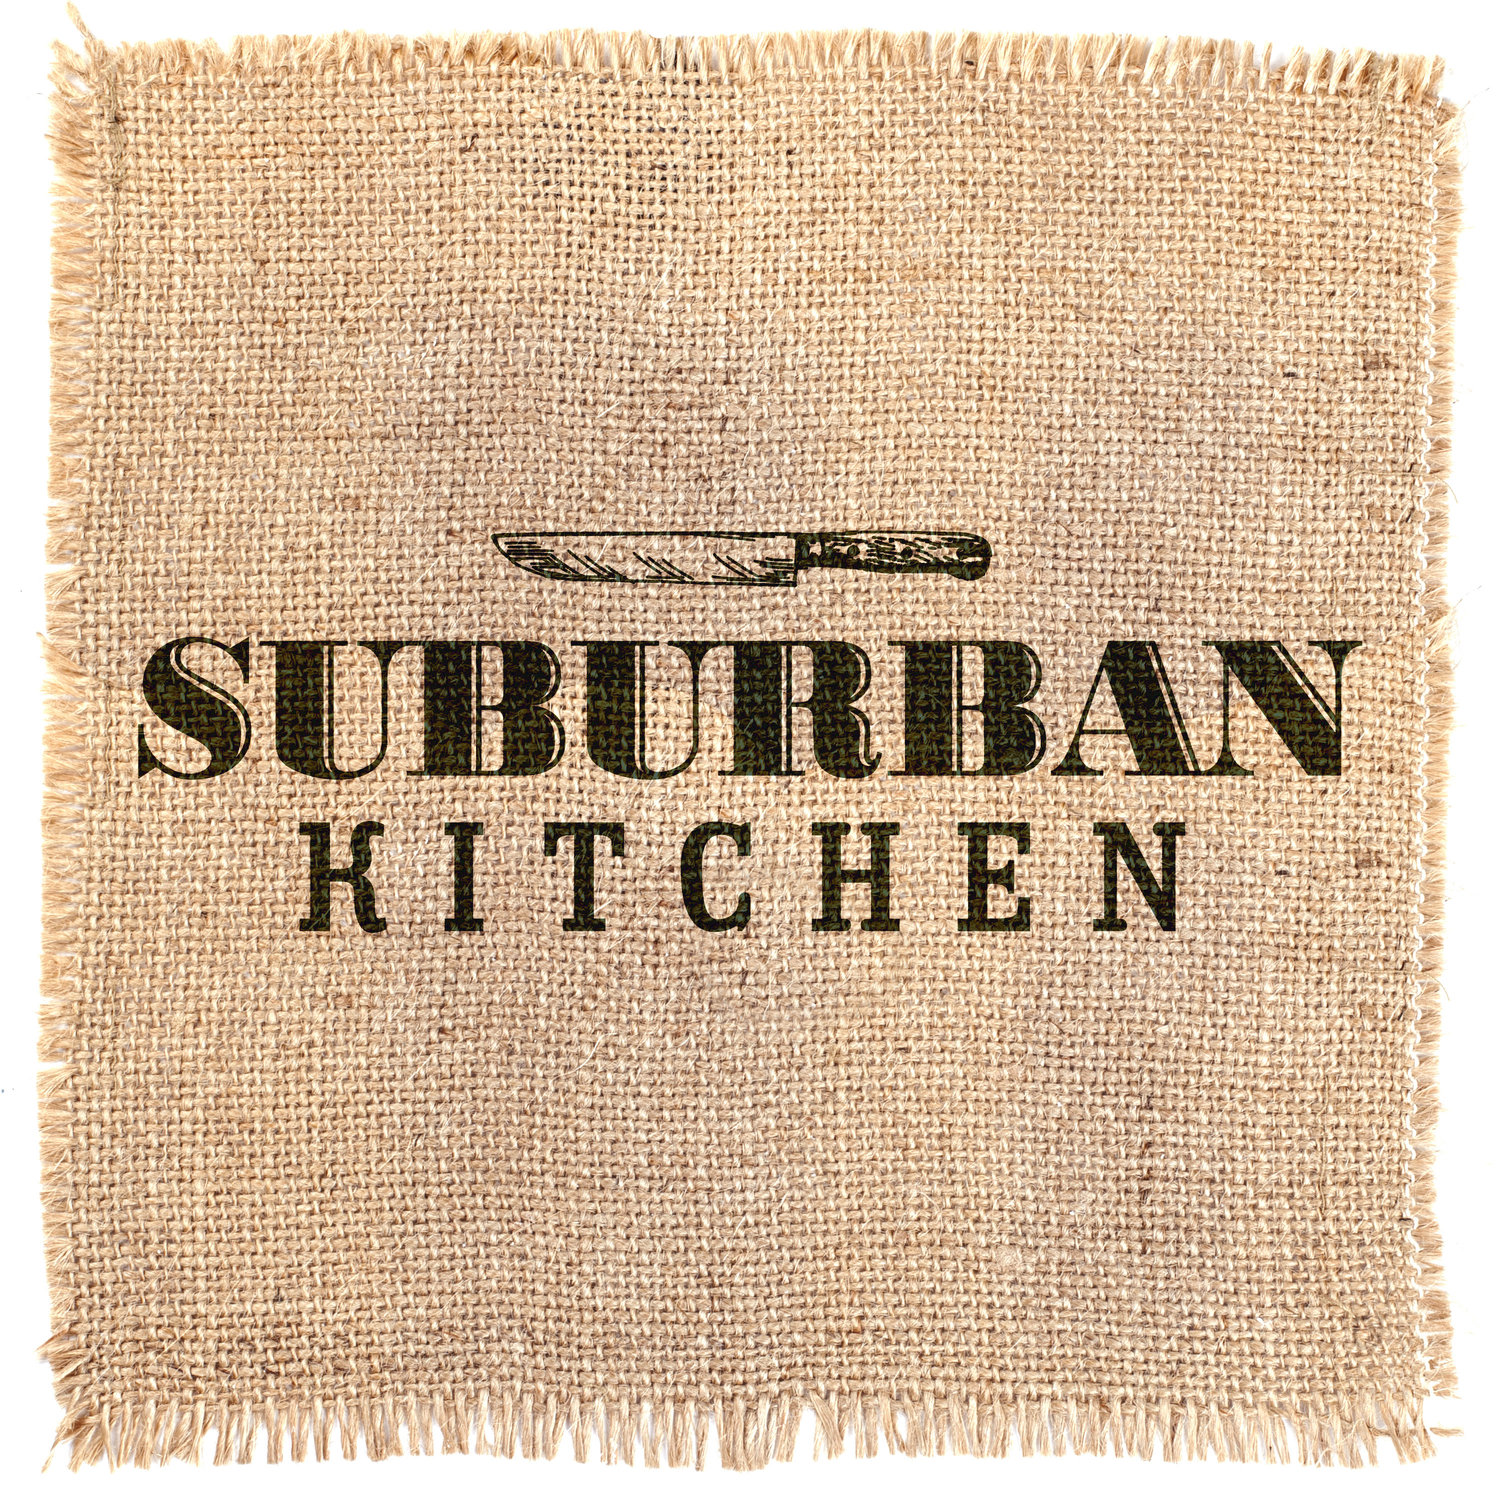 Suburban Kitchen | Private chef | albany catering